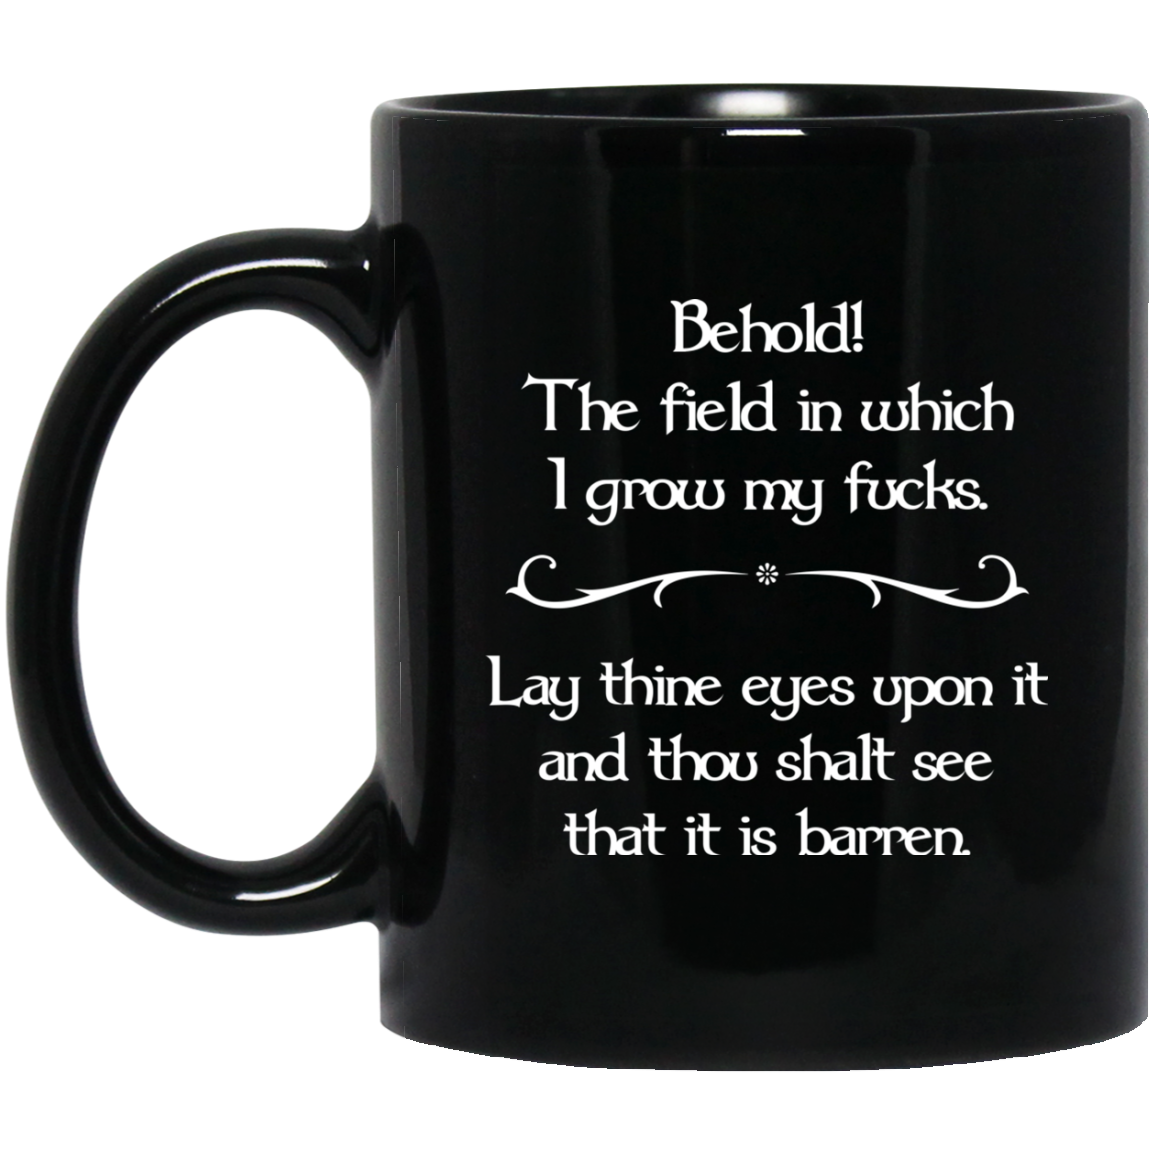 image 32 - Behold The field in which I grow my fucks. Lay thine eyes upon it and thou shalt see that it is barren mug